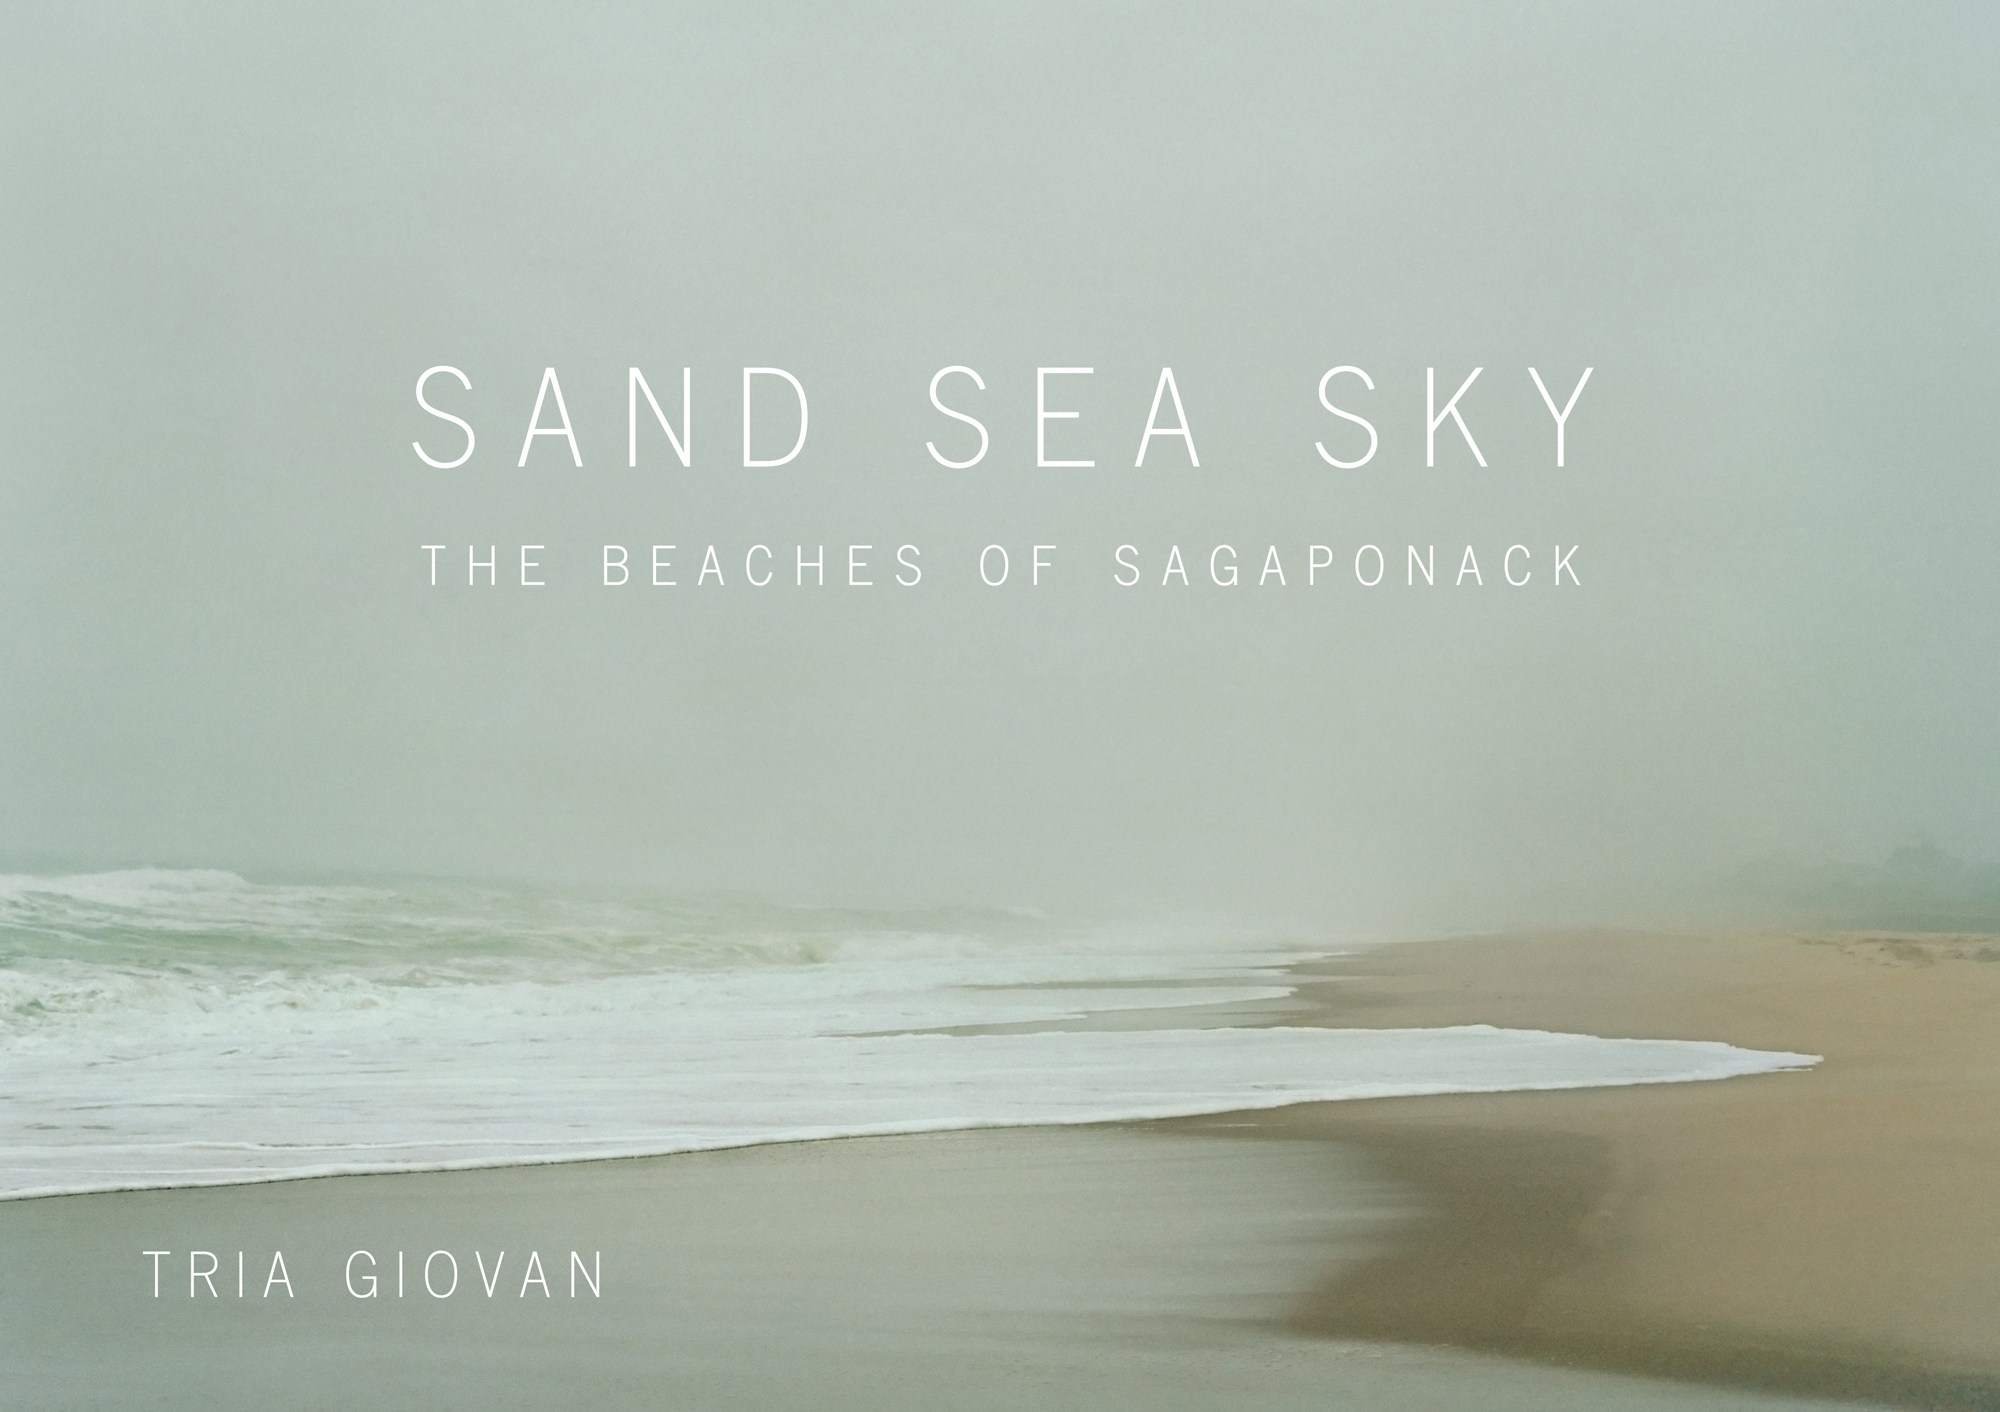 Sand_Sea_Sky_cover_w2000px.jpg